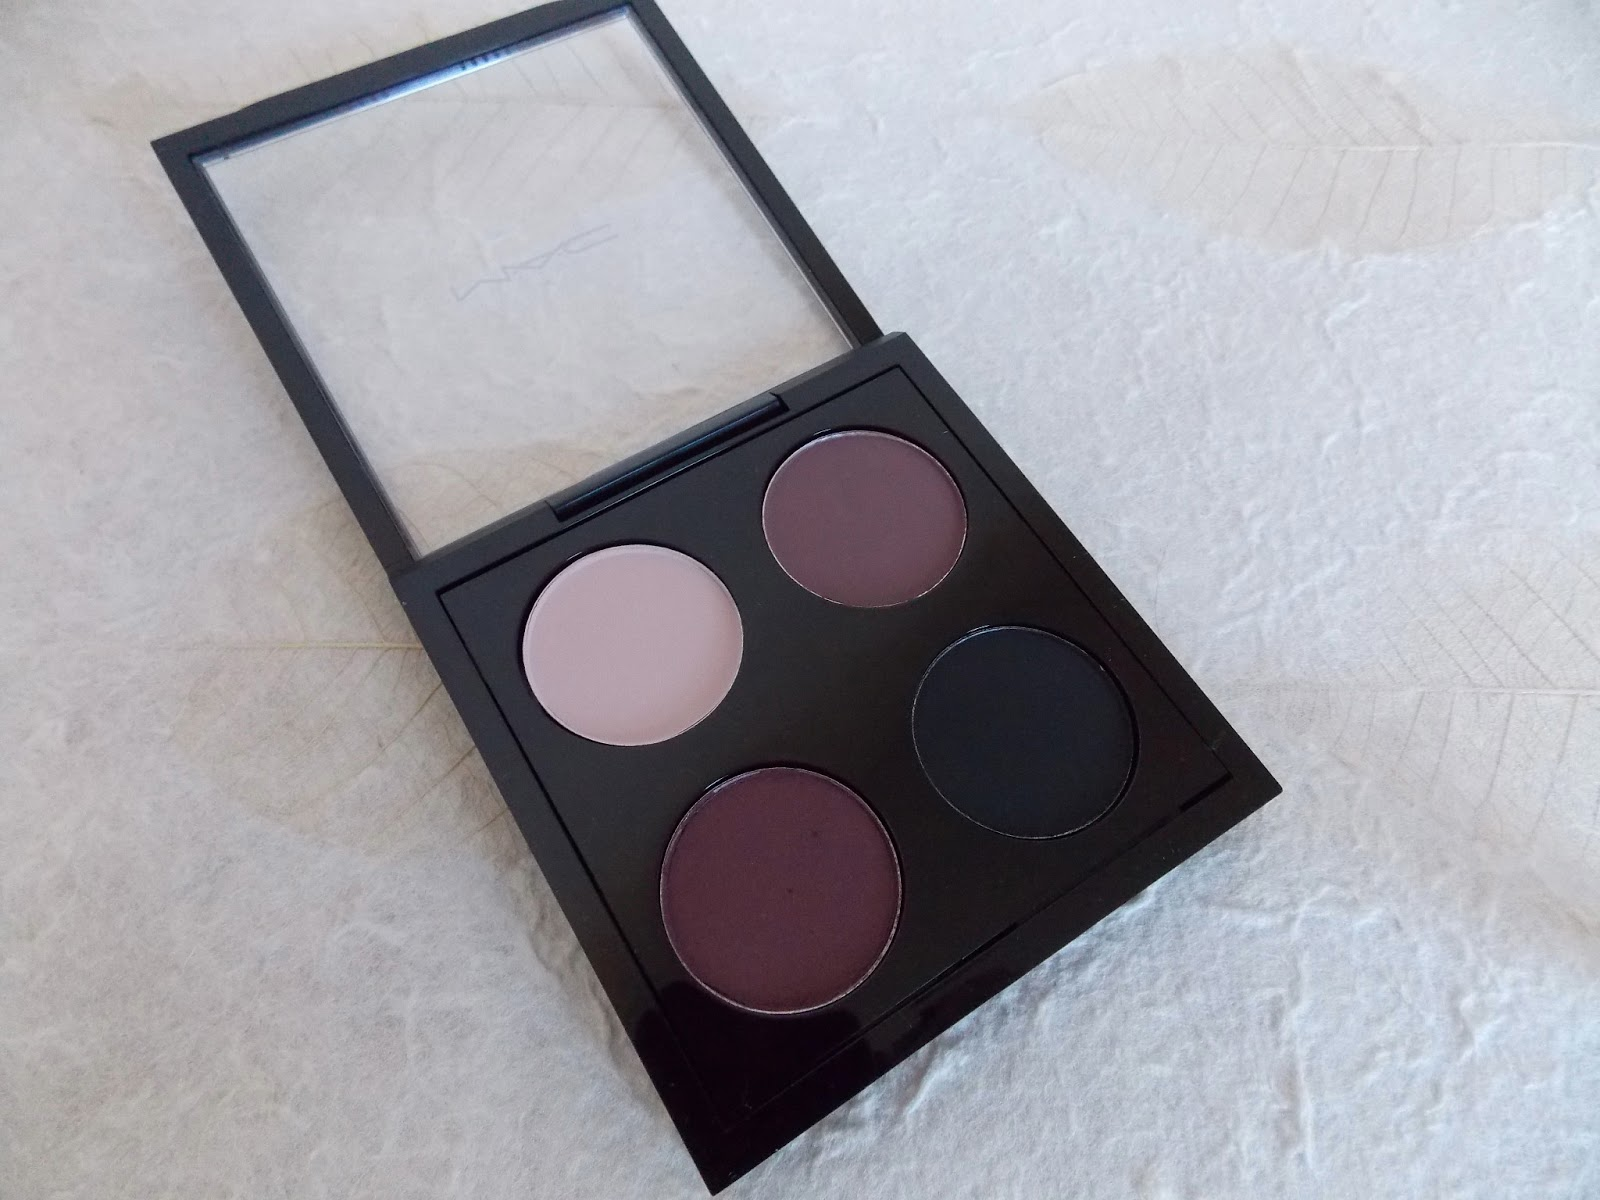 MAC Eye Shadows in Yogurt, Blackberry, Sketch and Carbon